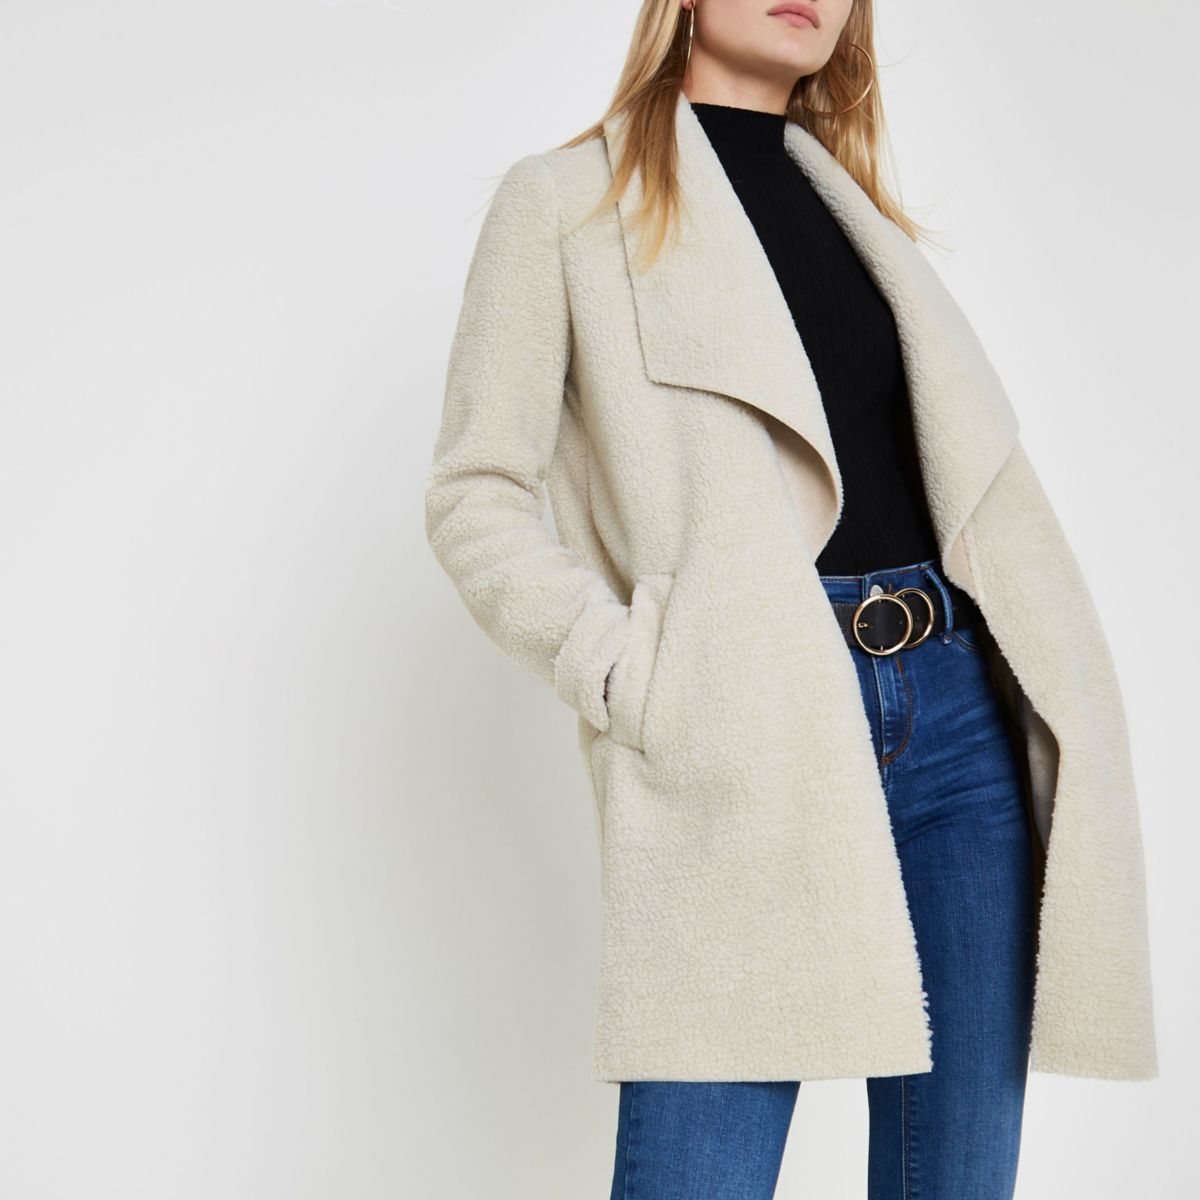 Discover ASOS latest collection of coats and jackets for women. Shop today from our range of bomber jackets, trenchcoats, and coats.